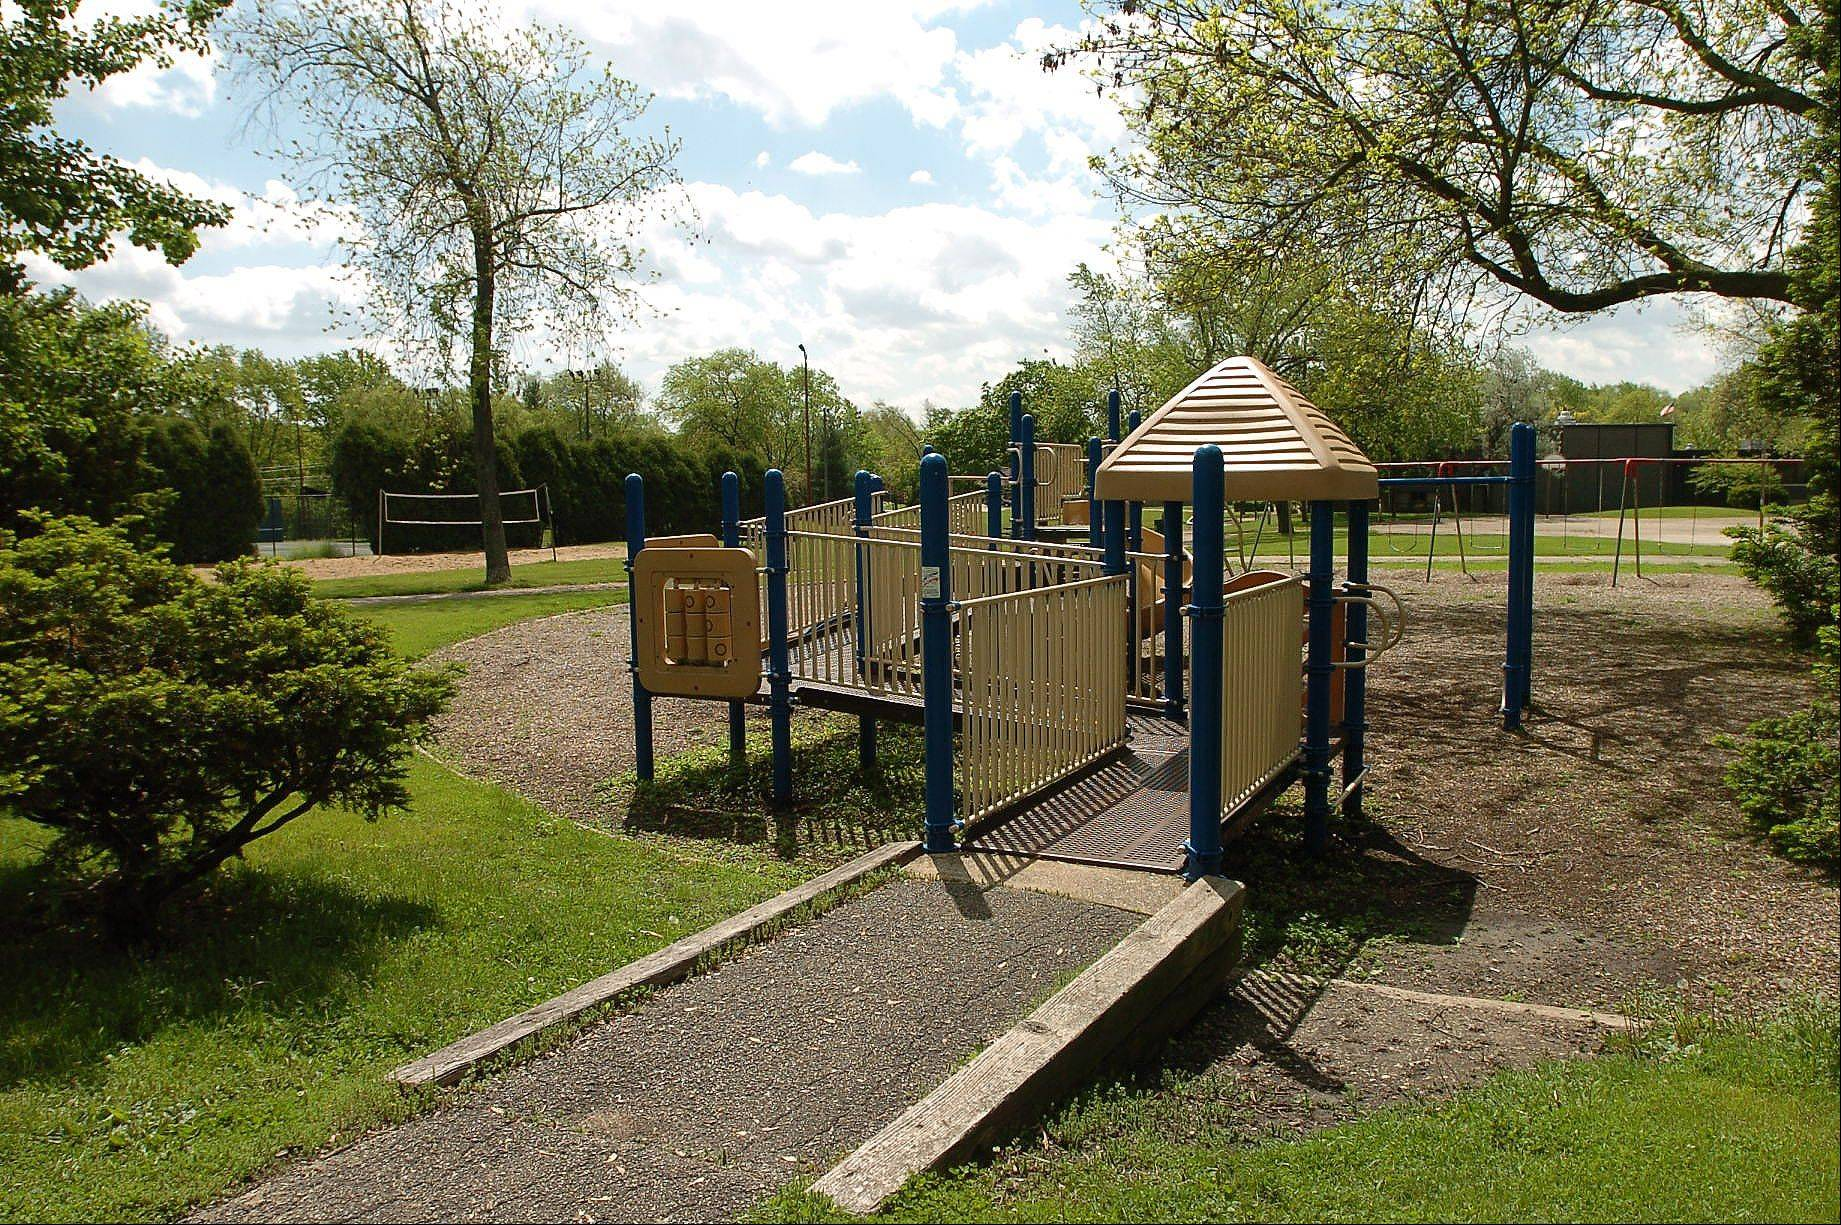 Construction on the first phase of a major renovation project at Frontier Park in Arlington Heights will start this spring with help from a state grant. The work includes adding a baseball field, a soccer field, a tennis court and lighted walkways.